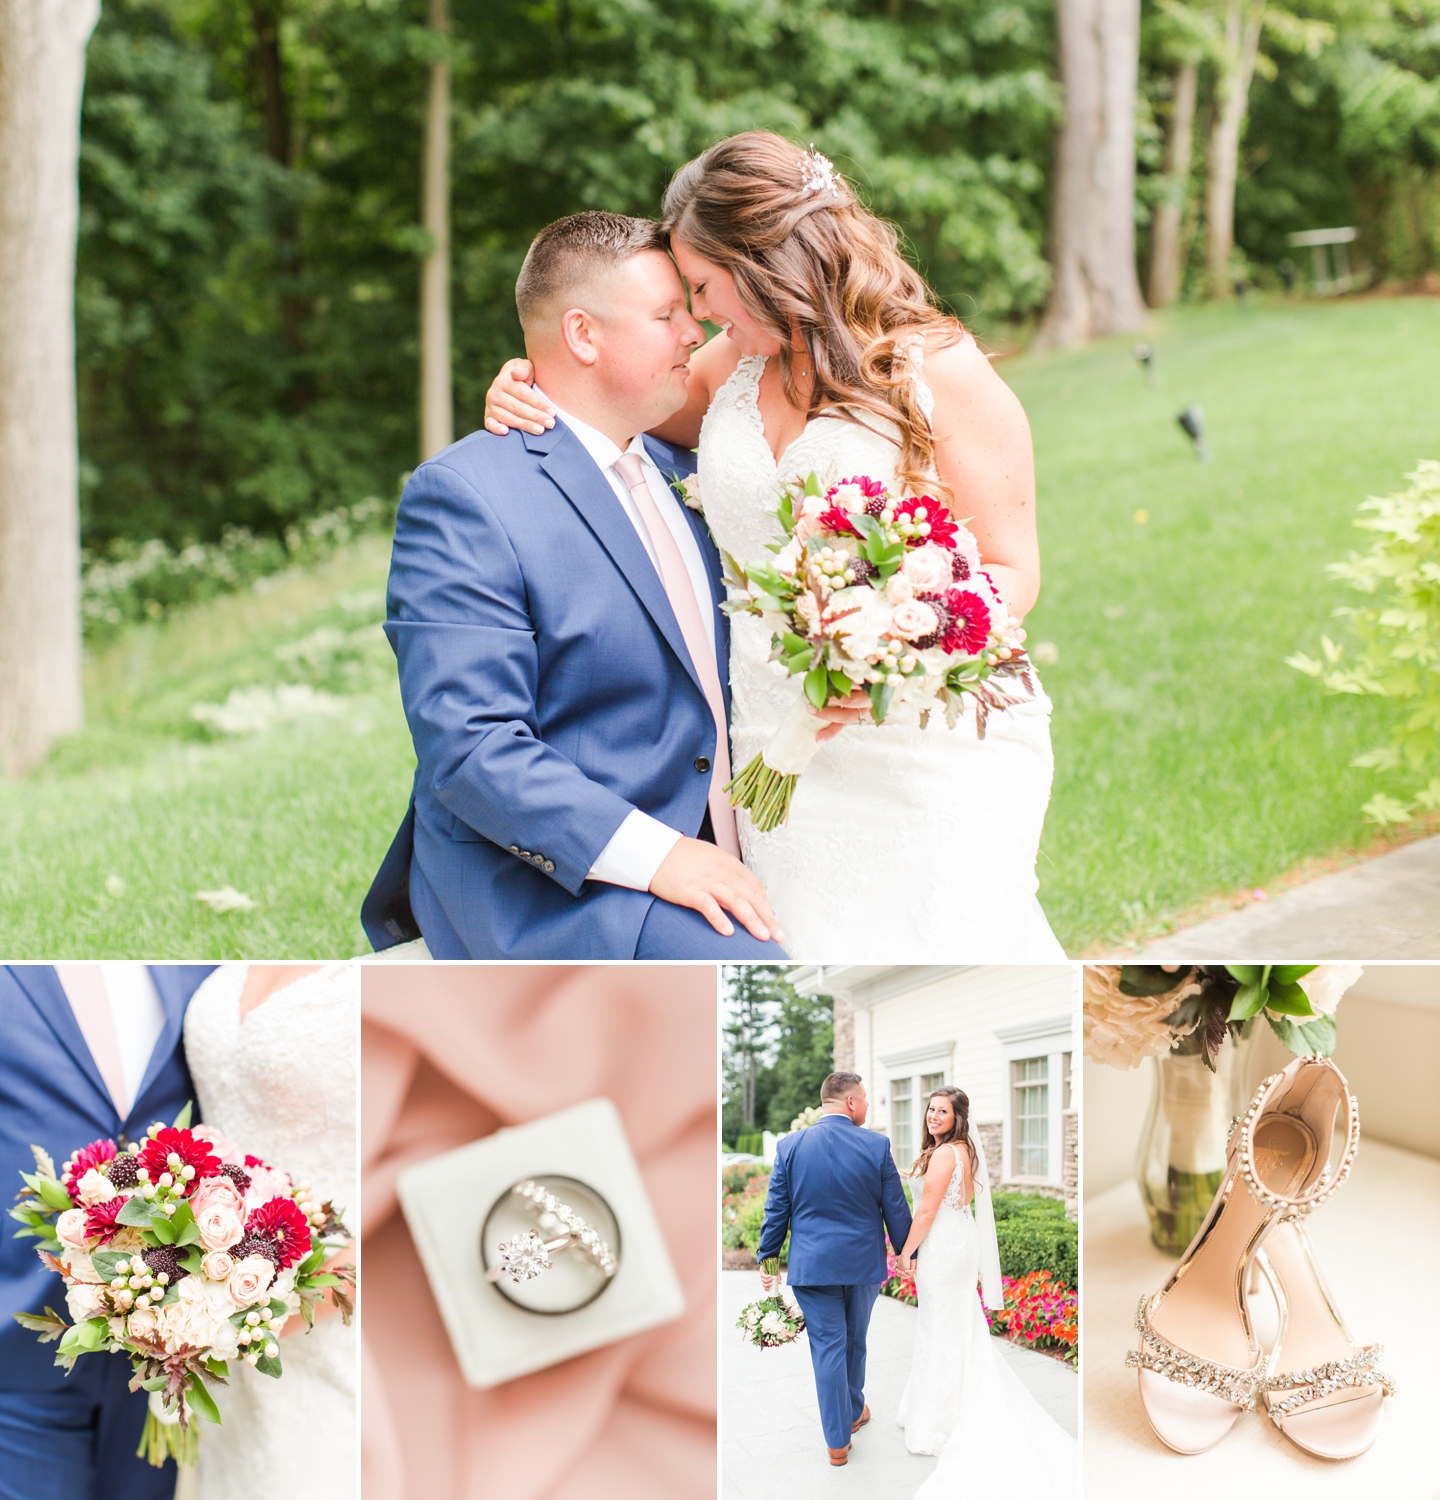 the-riverview-wedding-simsbury-connecticut-photographer-shaina-lee-photography-cover-photo.jpg